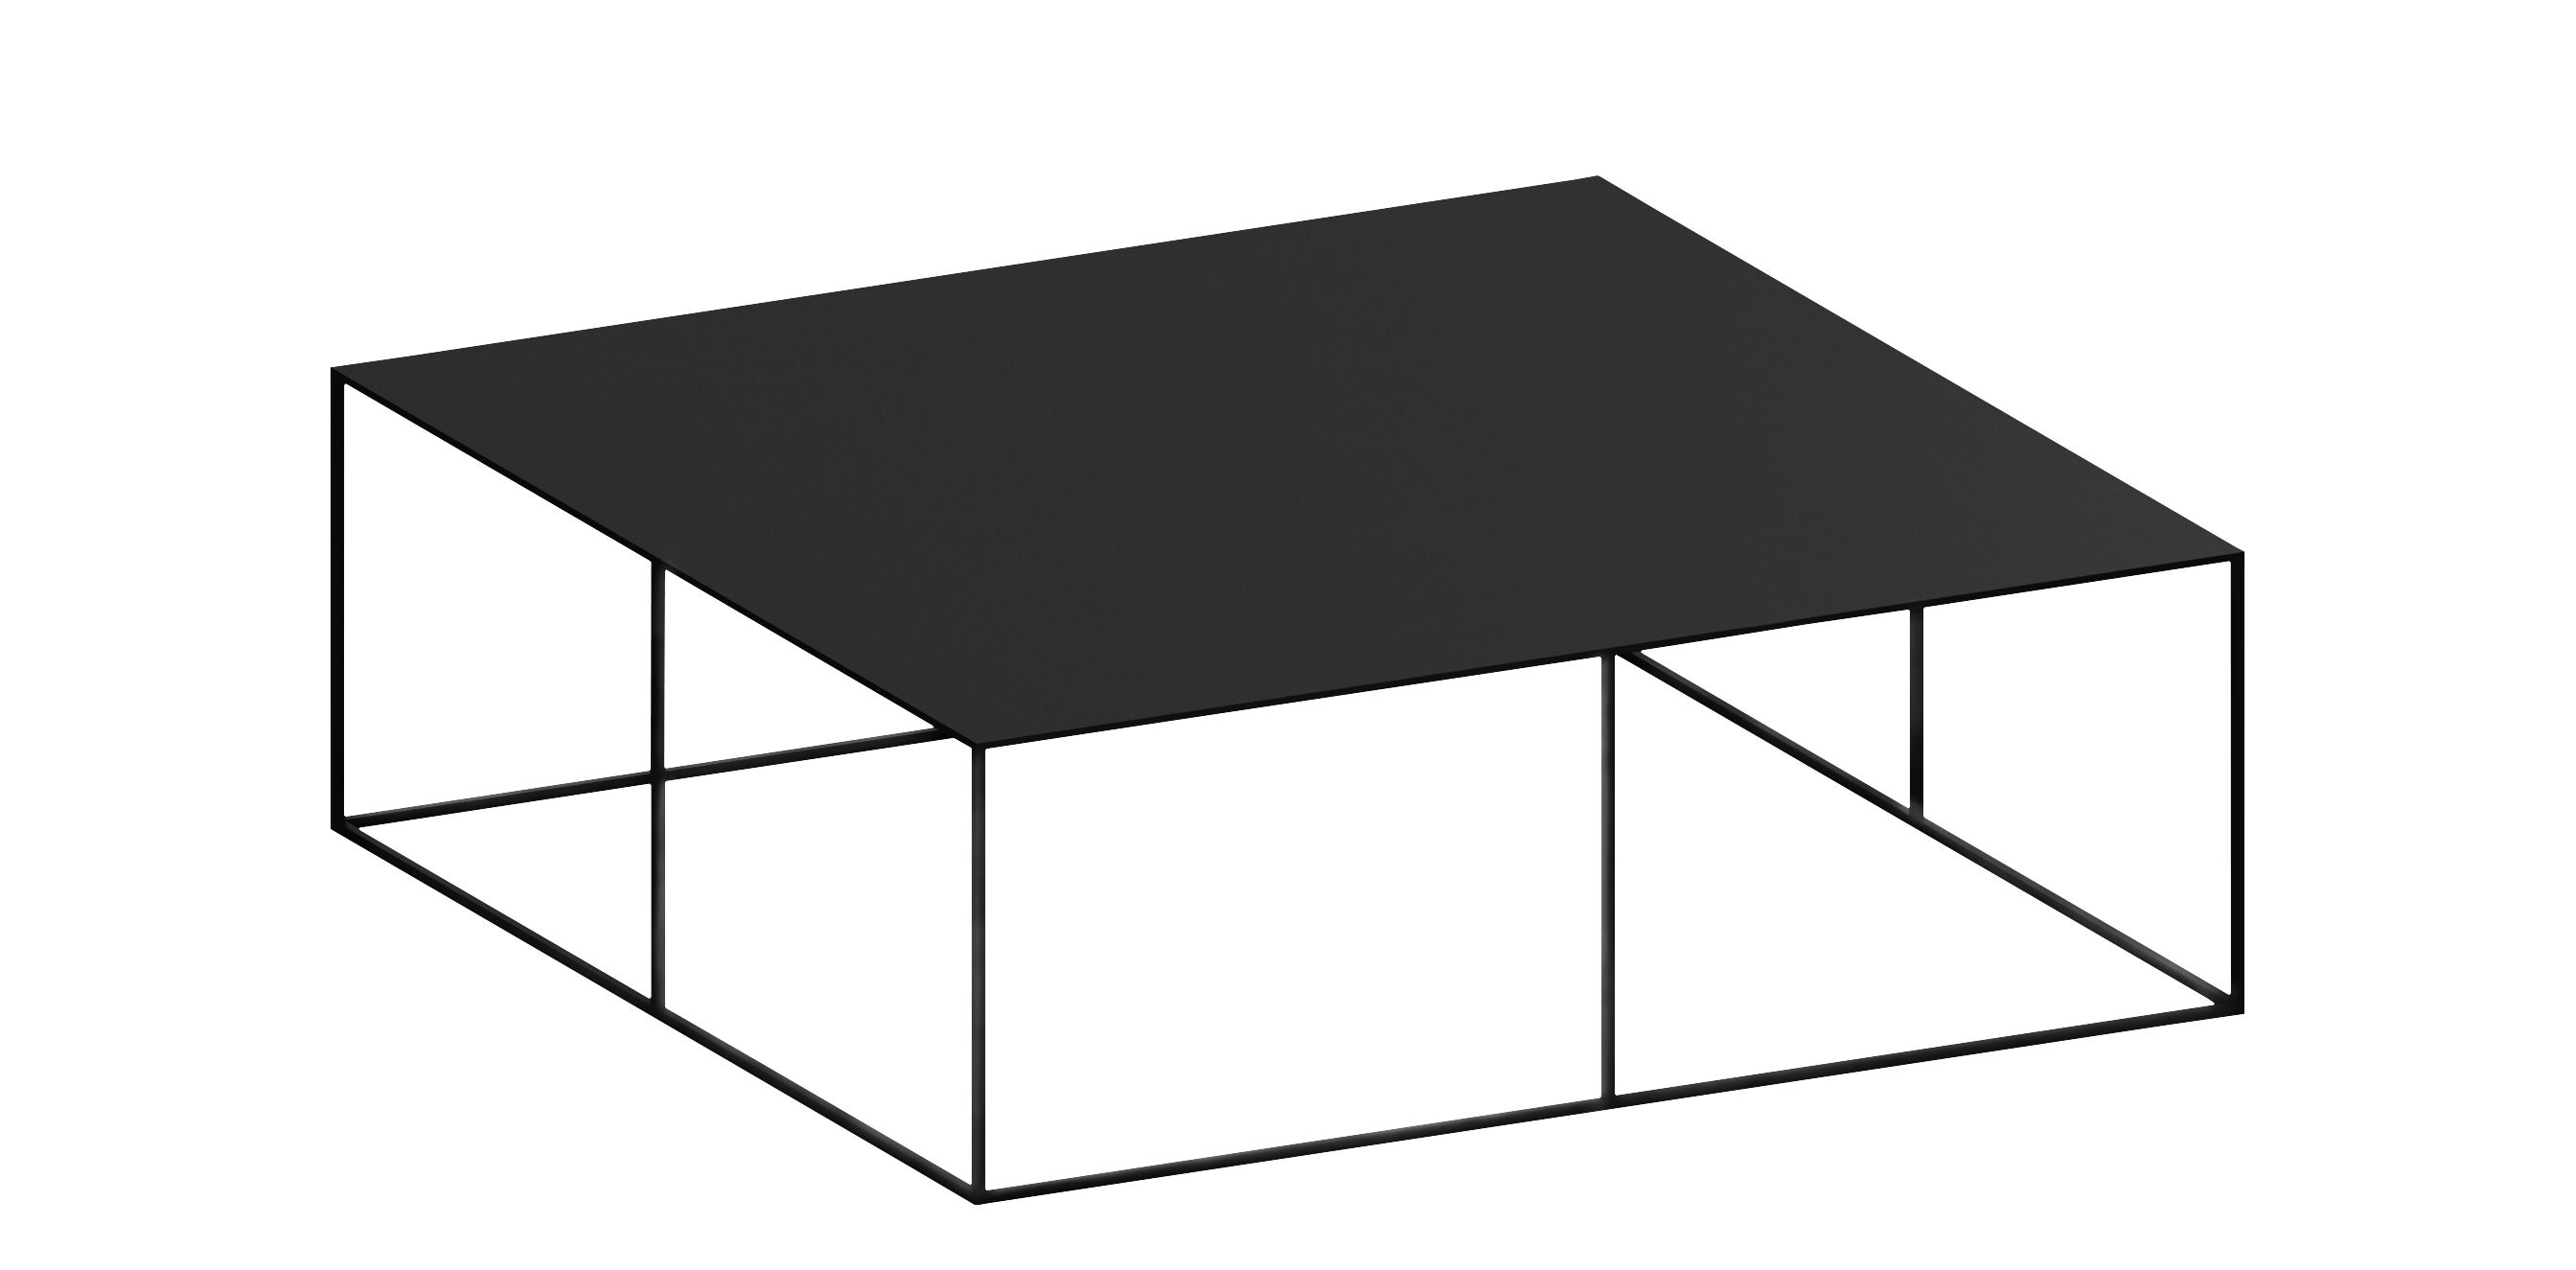 Furniture - Coffee Tables - Slim Irony Coffee table - 100 x 100 cm by Zeus - Black copper - Painted steel